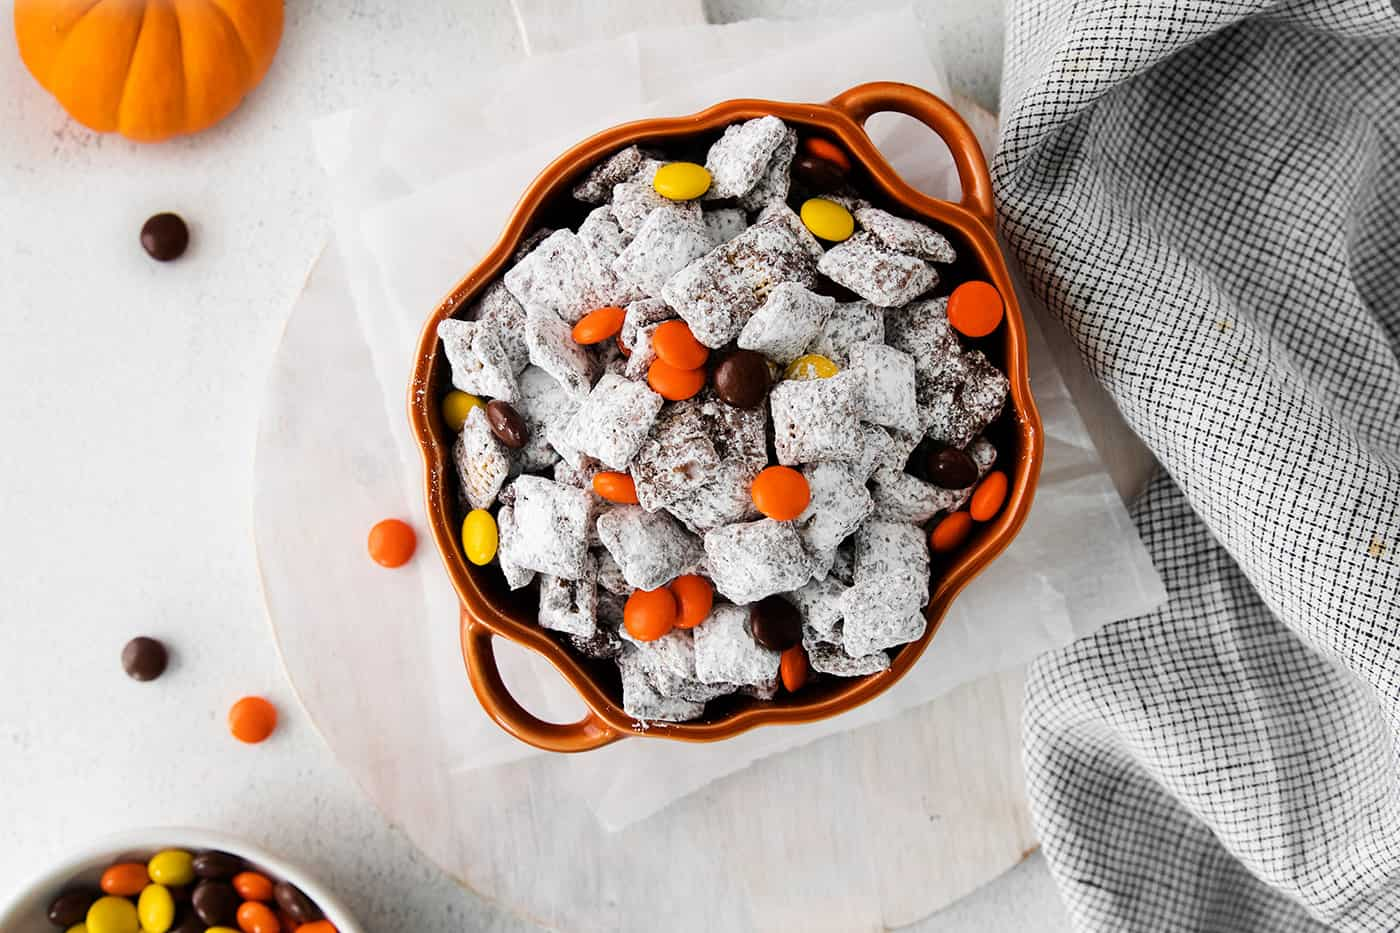 Muddy Buddies with Reese's Pieces candies for Halloween, in a pumpkin bowl